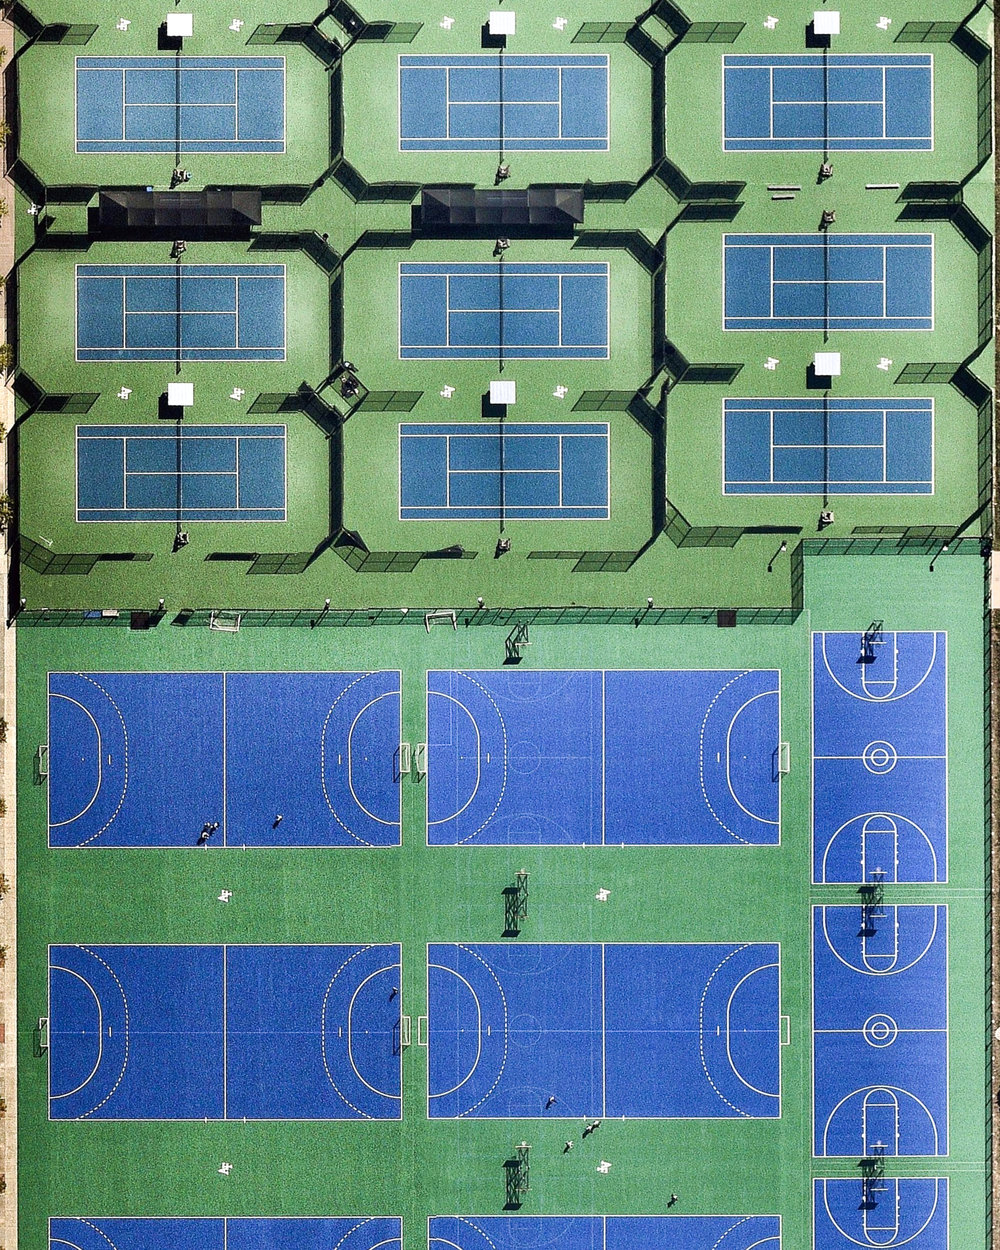 "Several athletic fields are positioned side-by-side in the Cadet Area of the United States Air Force Academy, in Colorado Springs, Colorado. In addition to the fields and courts shown in this Overview, the area contains a Cadet Gymnasium with indoor basketball and tennis courts, an Olympic-size swimming and diving pool, a water polo pool, numerous squash and racquetball courts, two weight-training rooms, and specialized facilities for volleyball, fencing, gymnastics, boxing, and riflery.  39°00'43.2""N, 104°53'13.3""W  Source imagery: Nearmap"